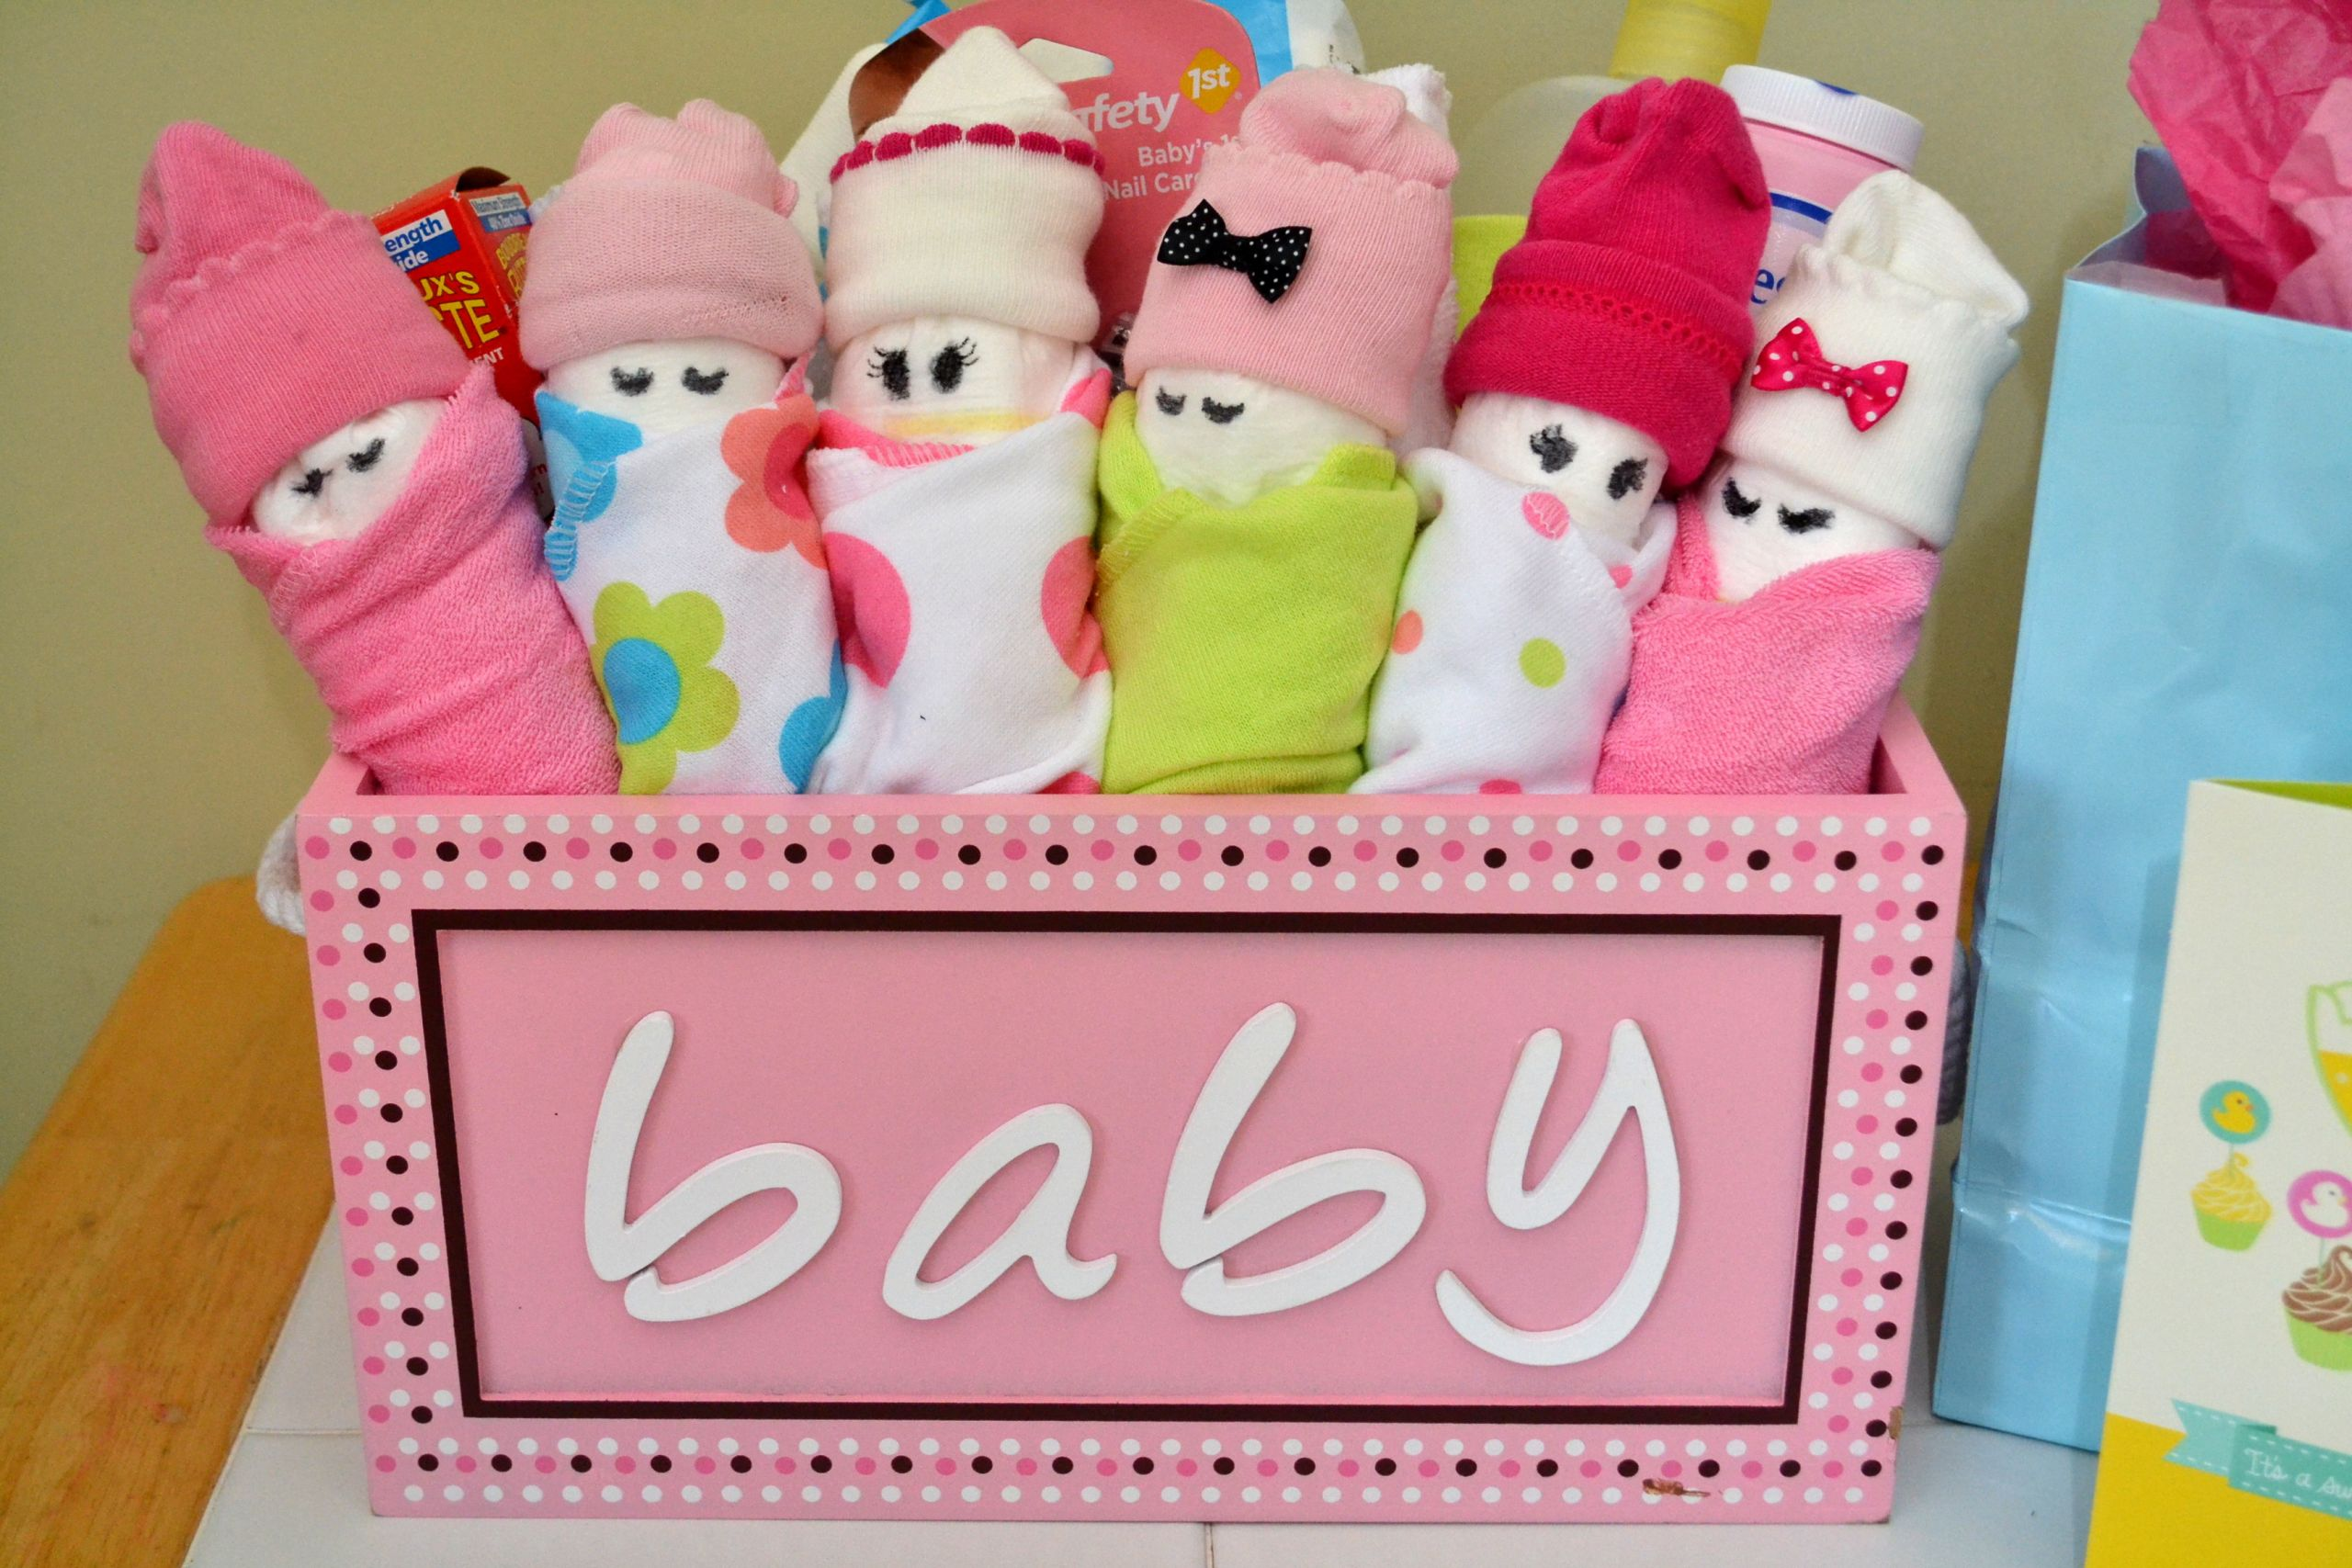 DIY Baby Gift Ideas  Essential Baby Shower Gifts & DIY Diaper Babies